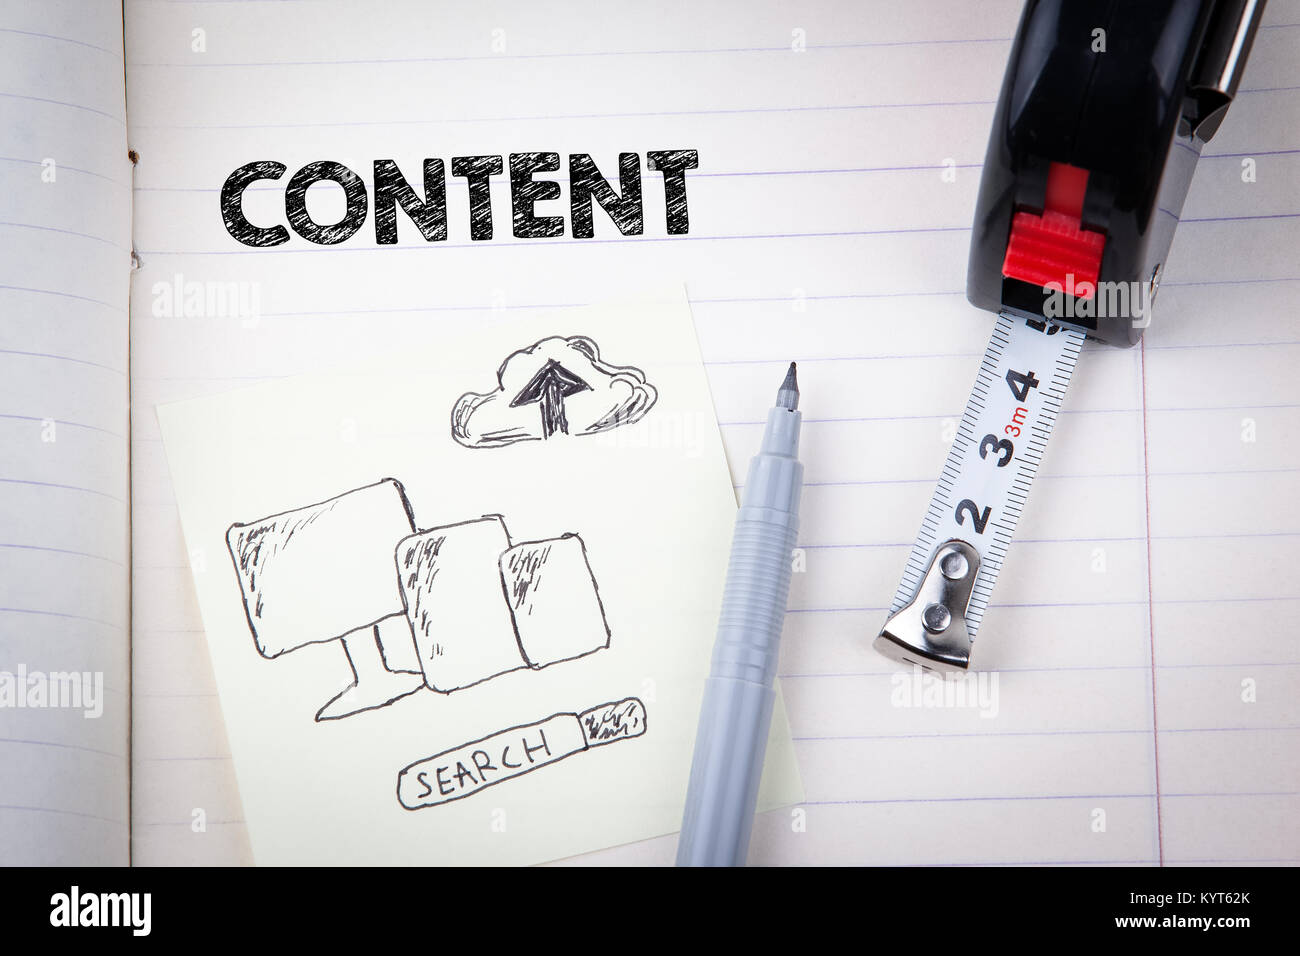 Content concept. social media, digital marketing and internet business Stock Photo